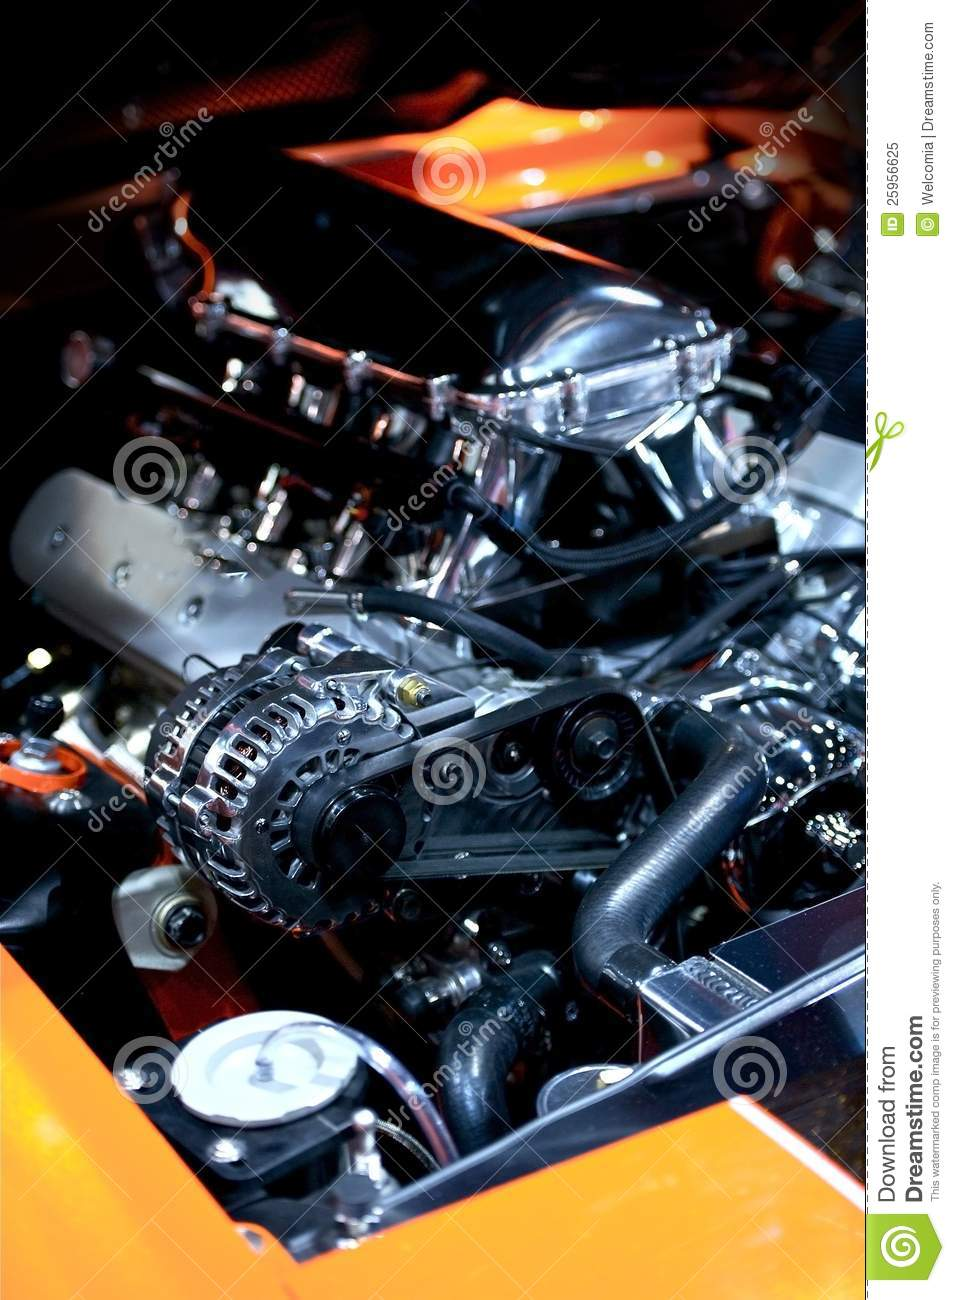 muscle car under the hood royalty free stock photo image muscle cliprt muscle clip art images